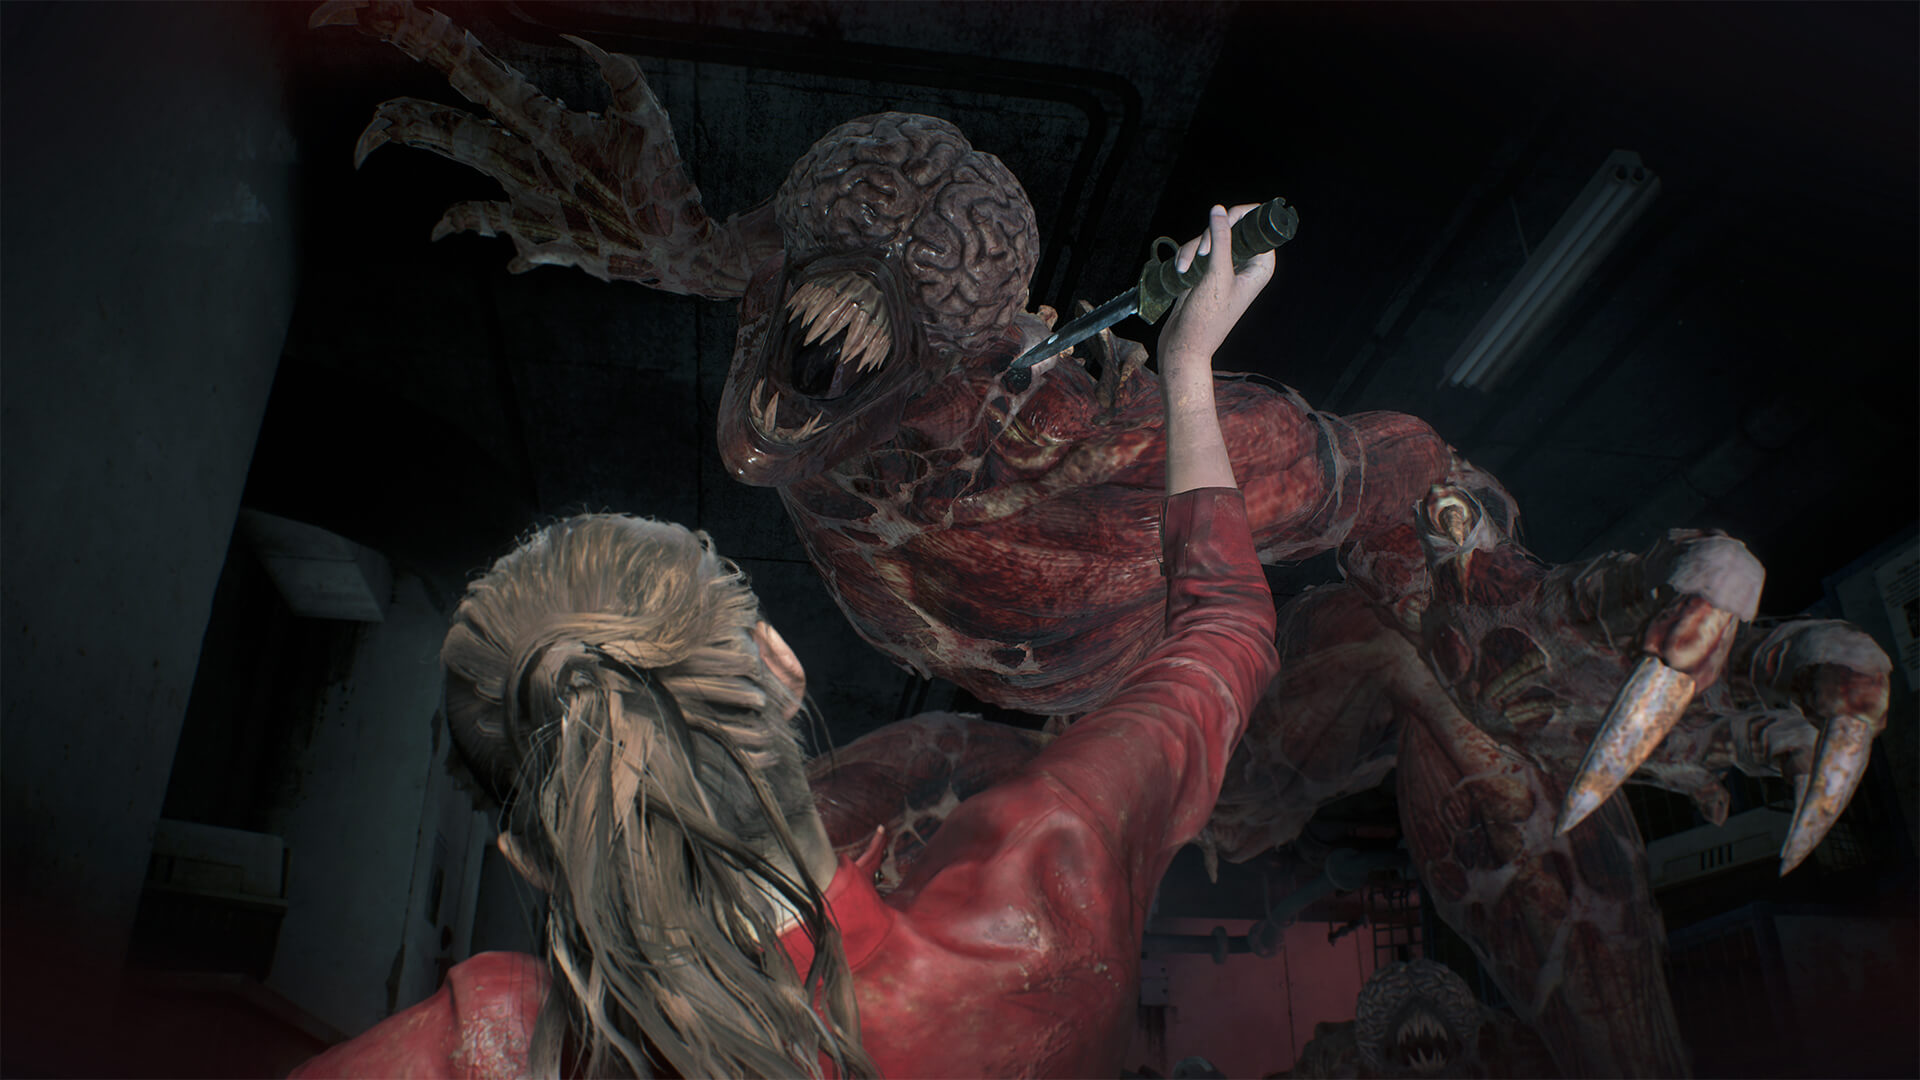 Claire Redfield defending herself against a Licker with a knife.